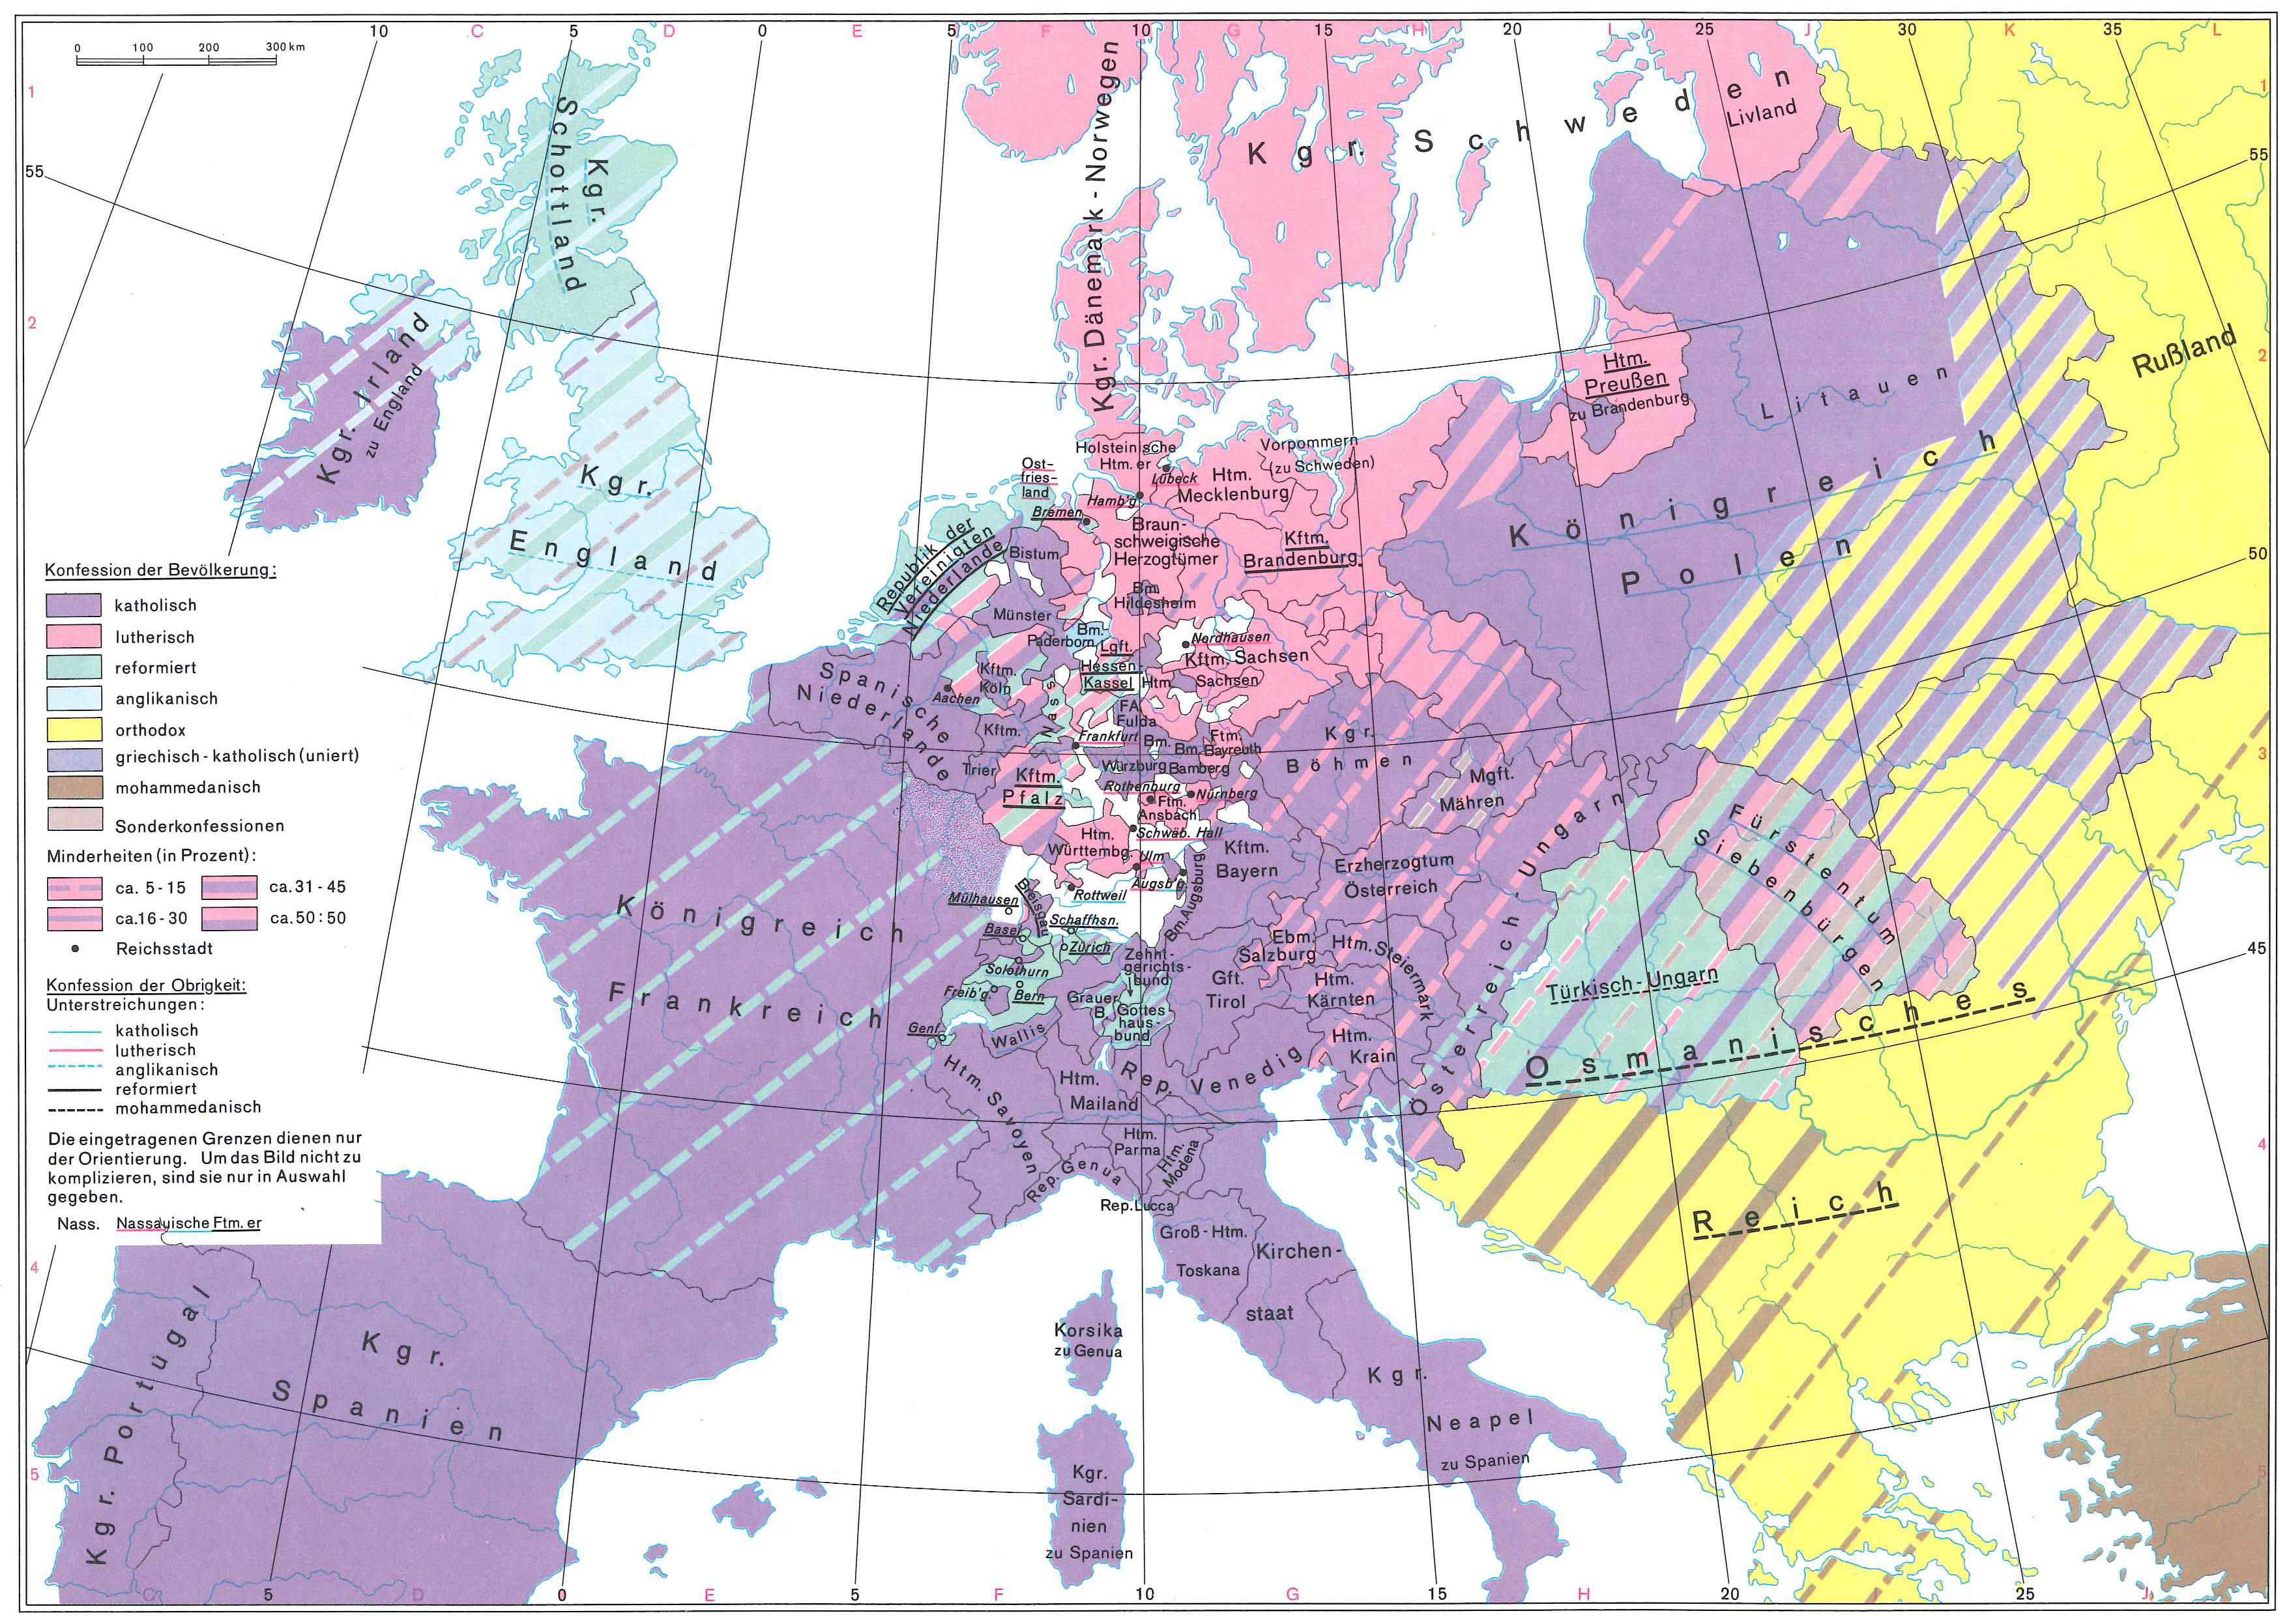 religious map of europe 1648 History 301 Week 1